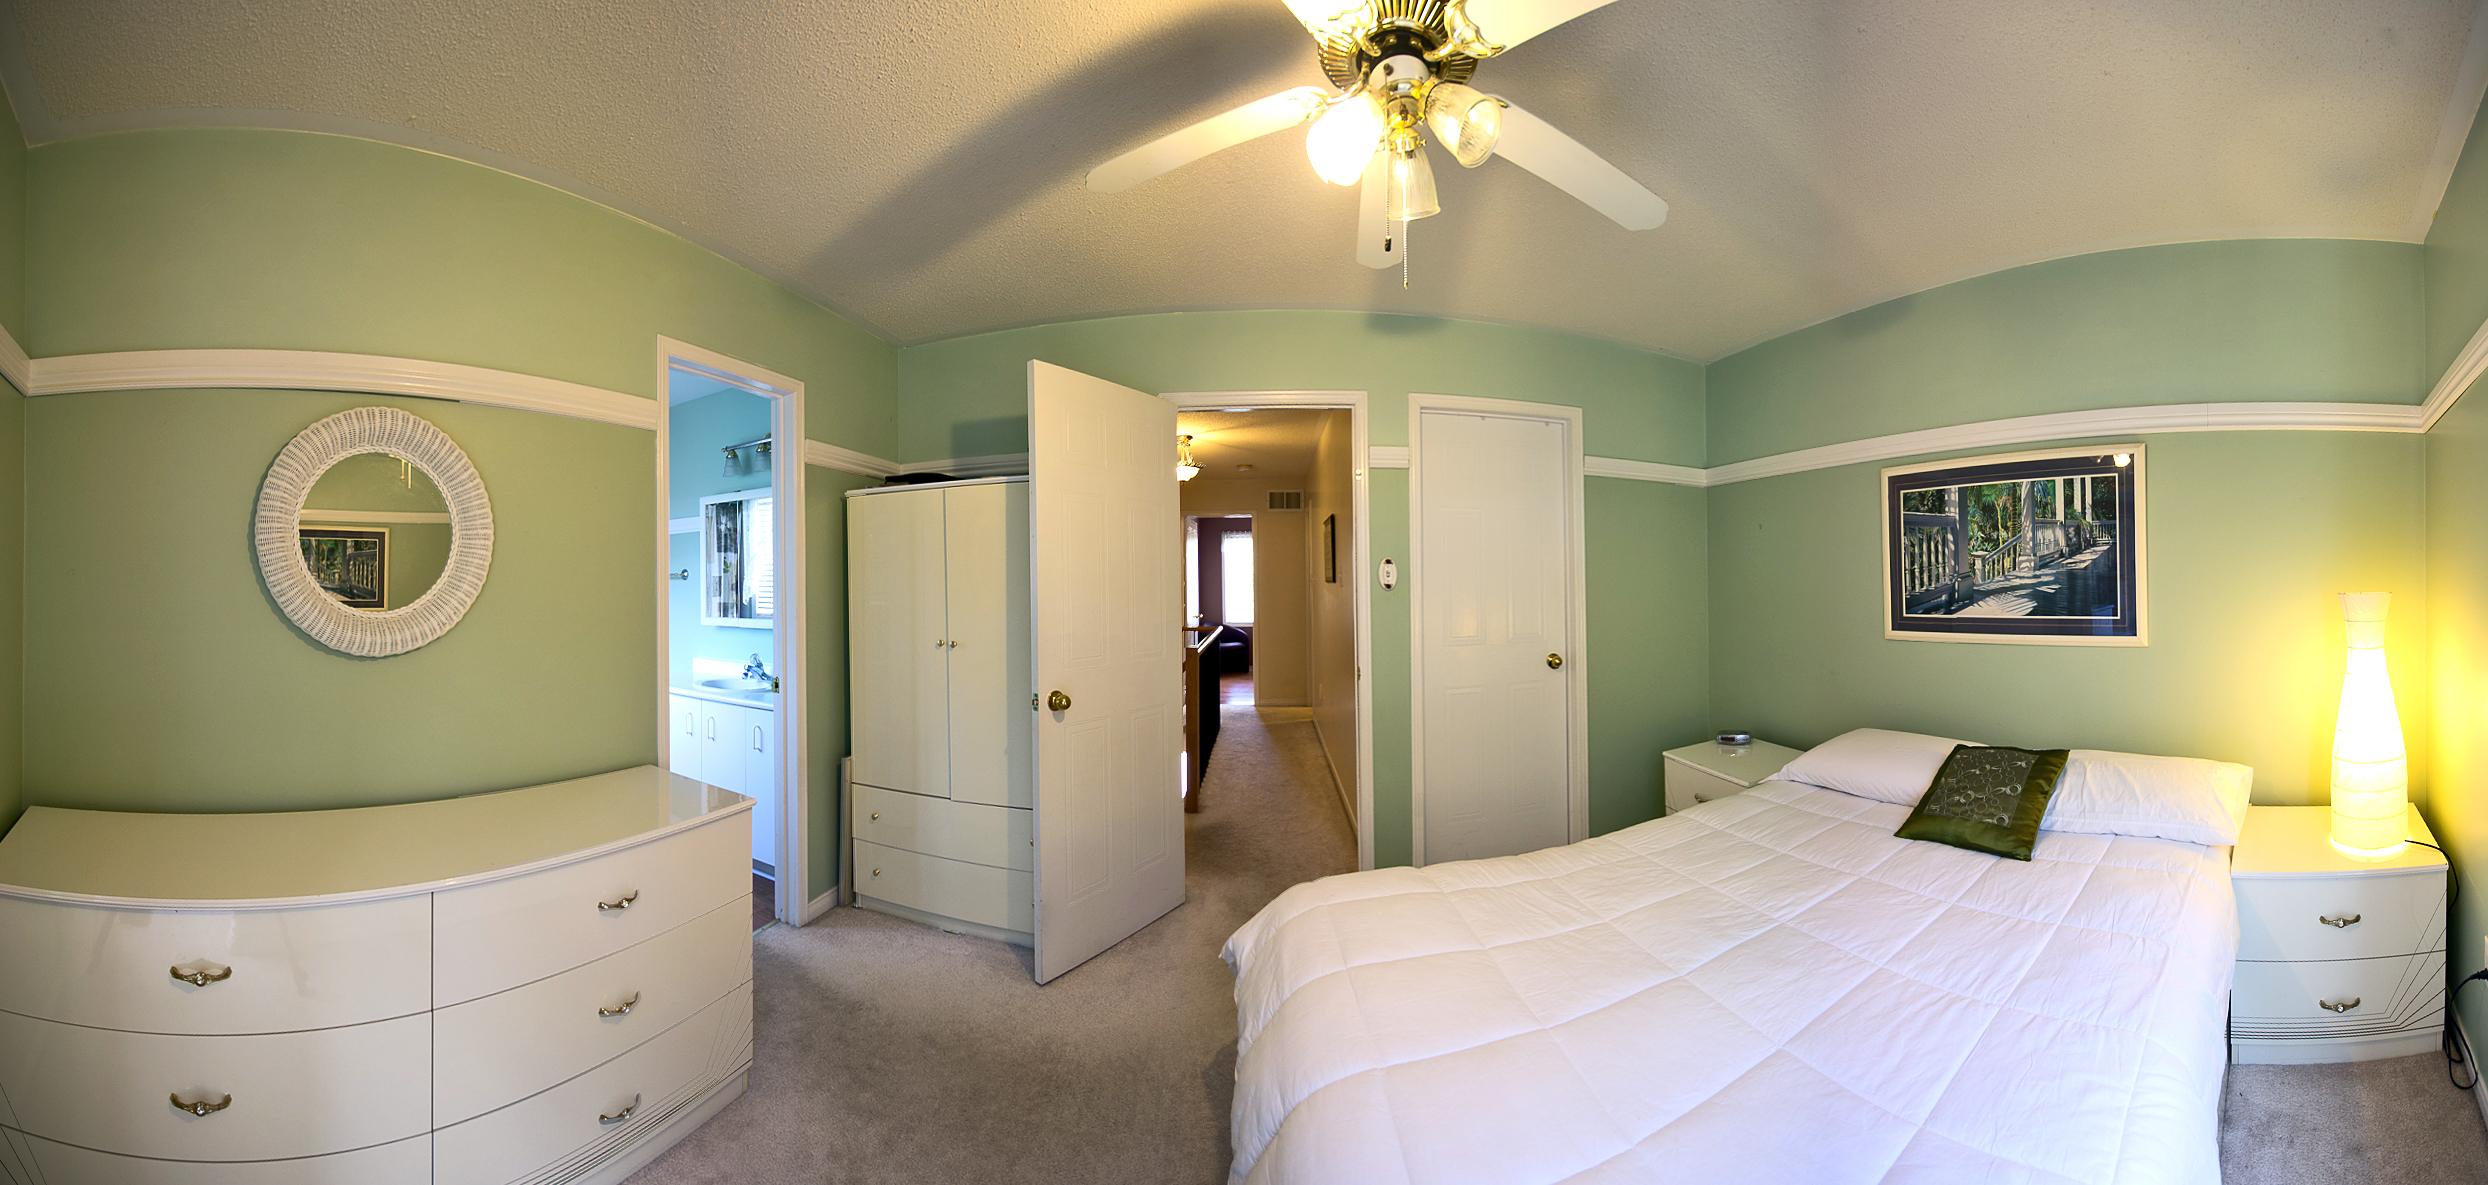 Panoramic View: Real Estate Interior & Exterior Wide Angle